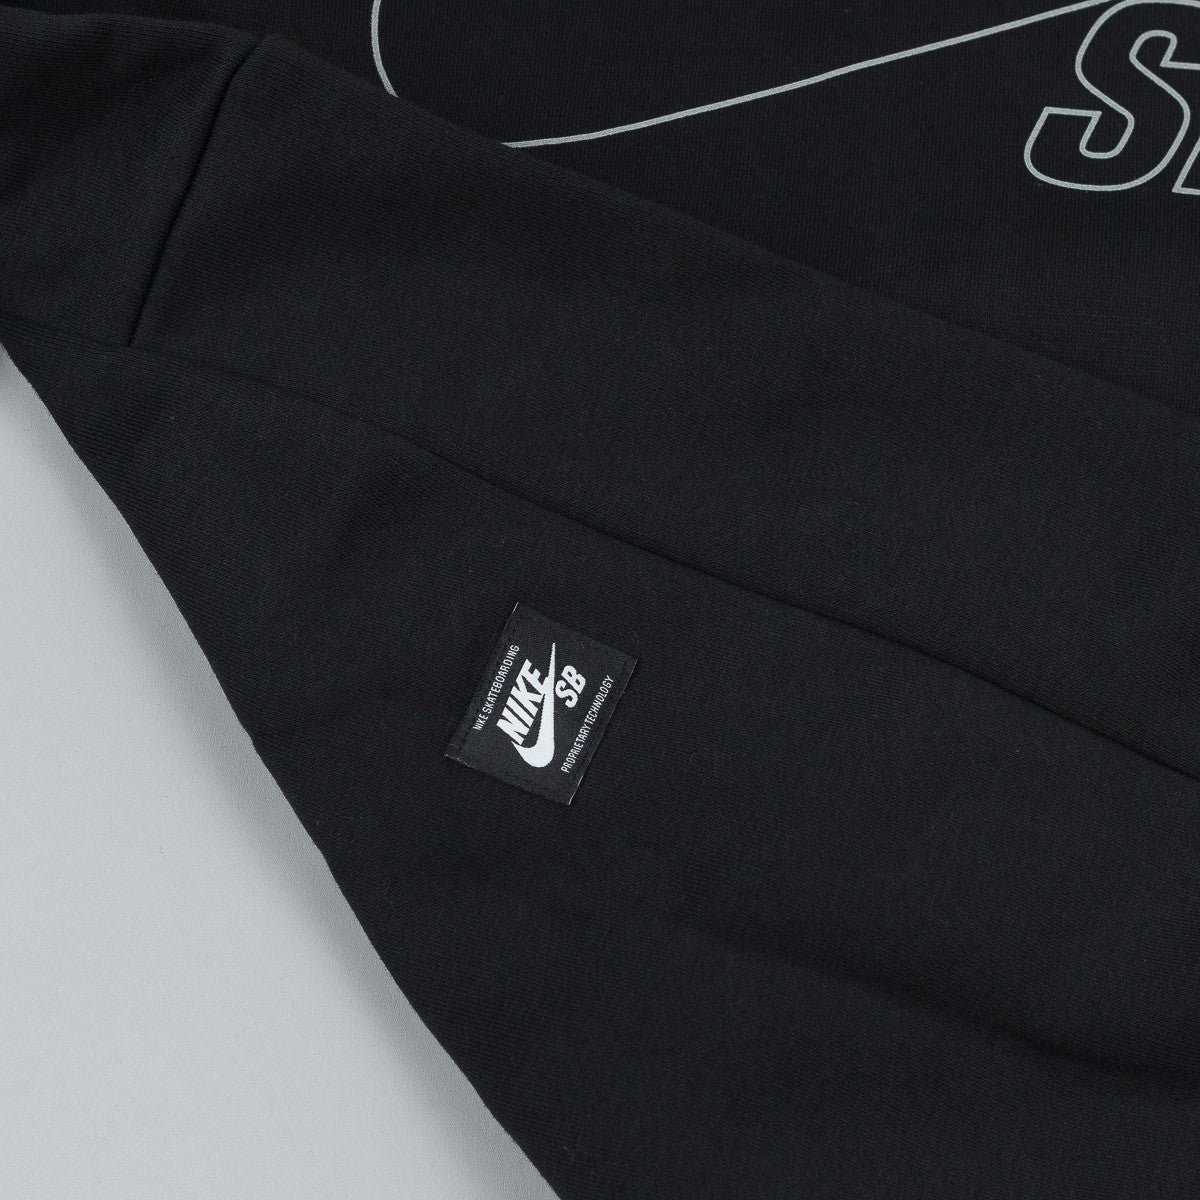 Nike SB Icon Reflective Hooded Sweatshirt - Black